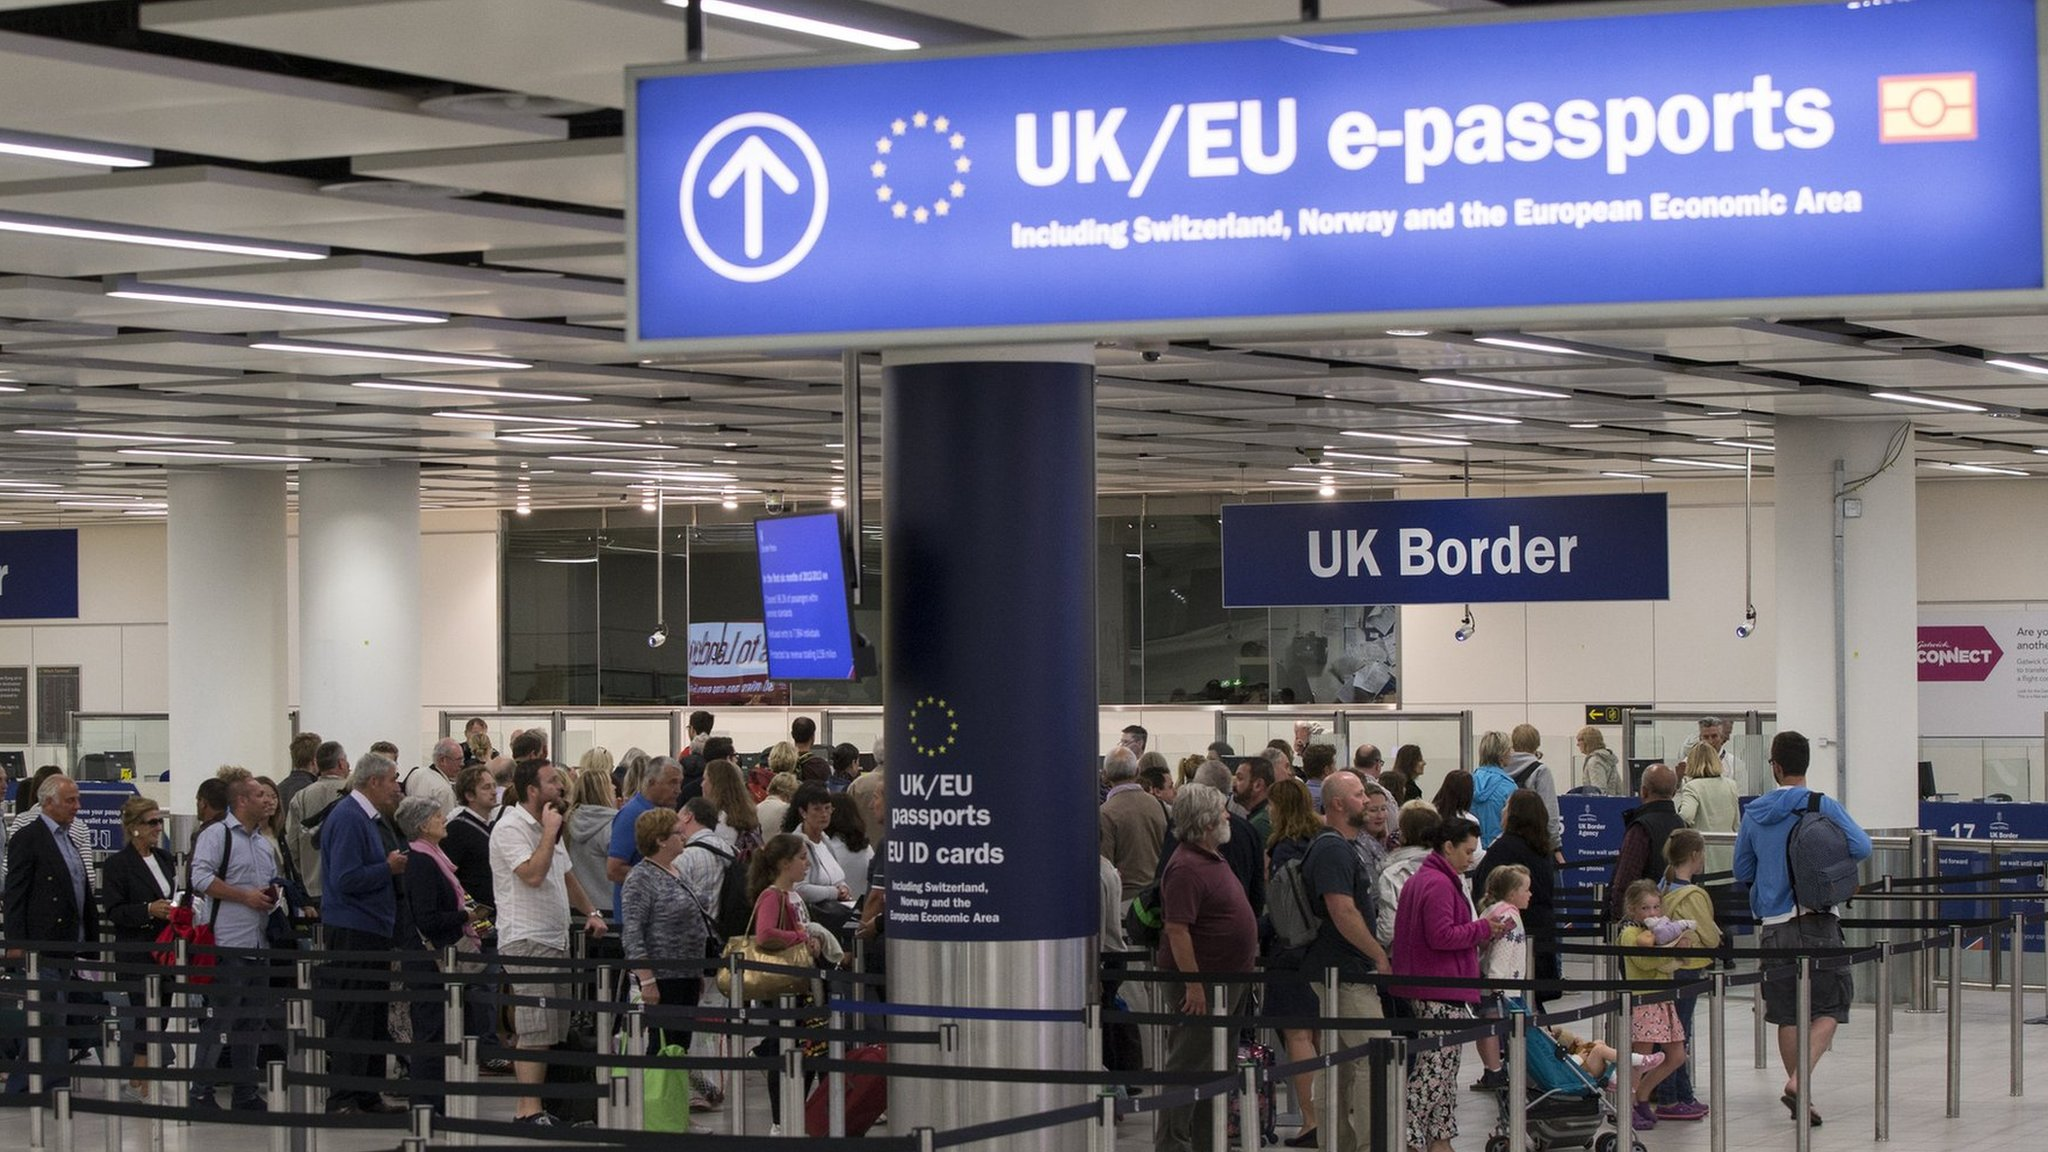 Brexit: UK-EU freedom of movement 'to end in March 2019'